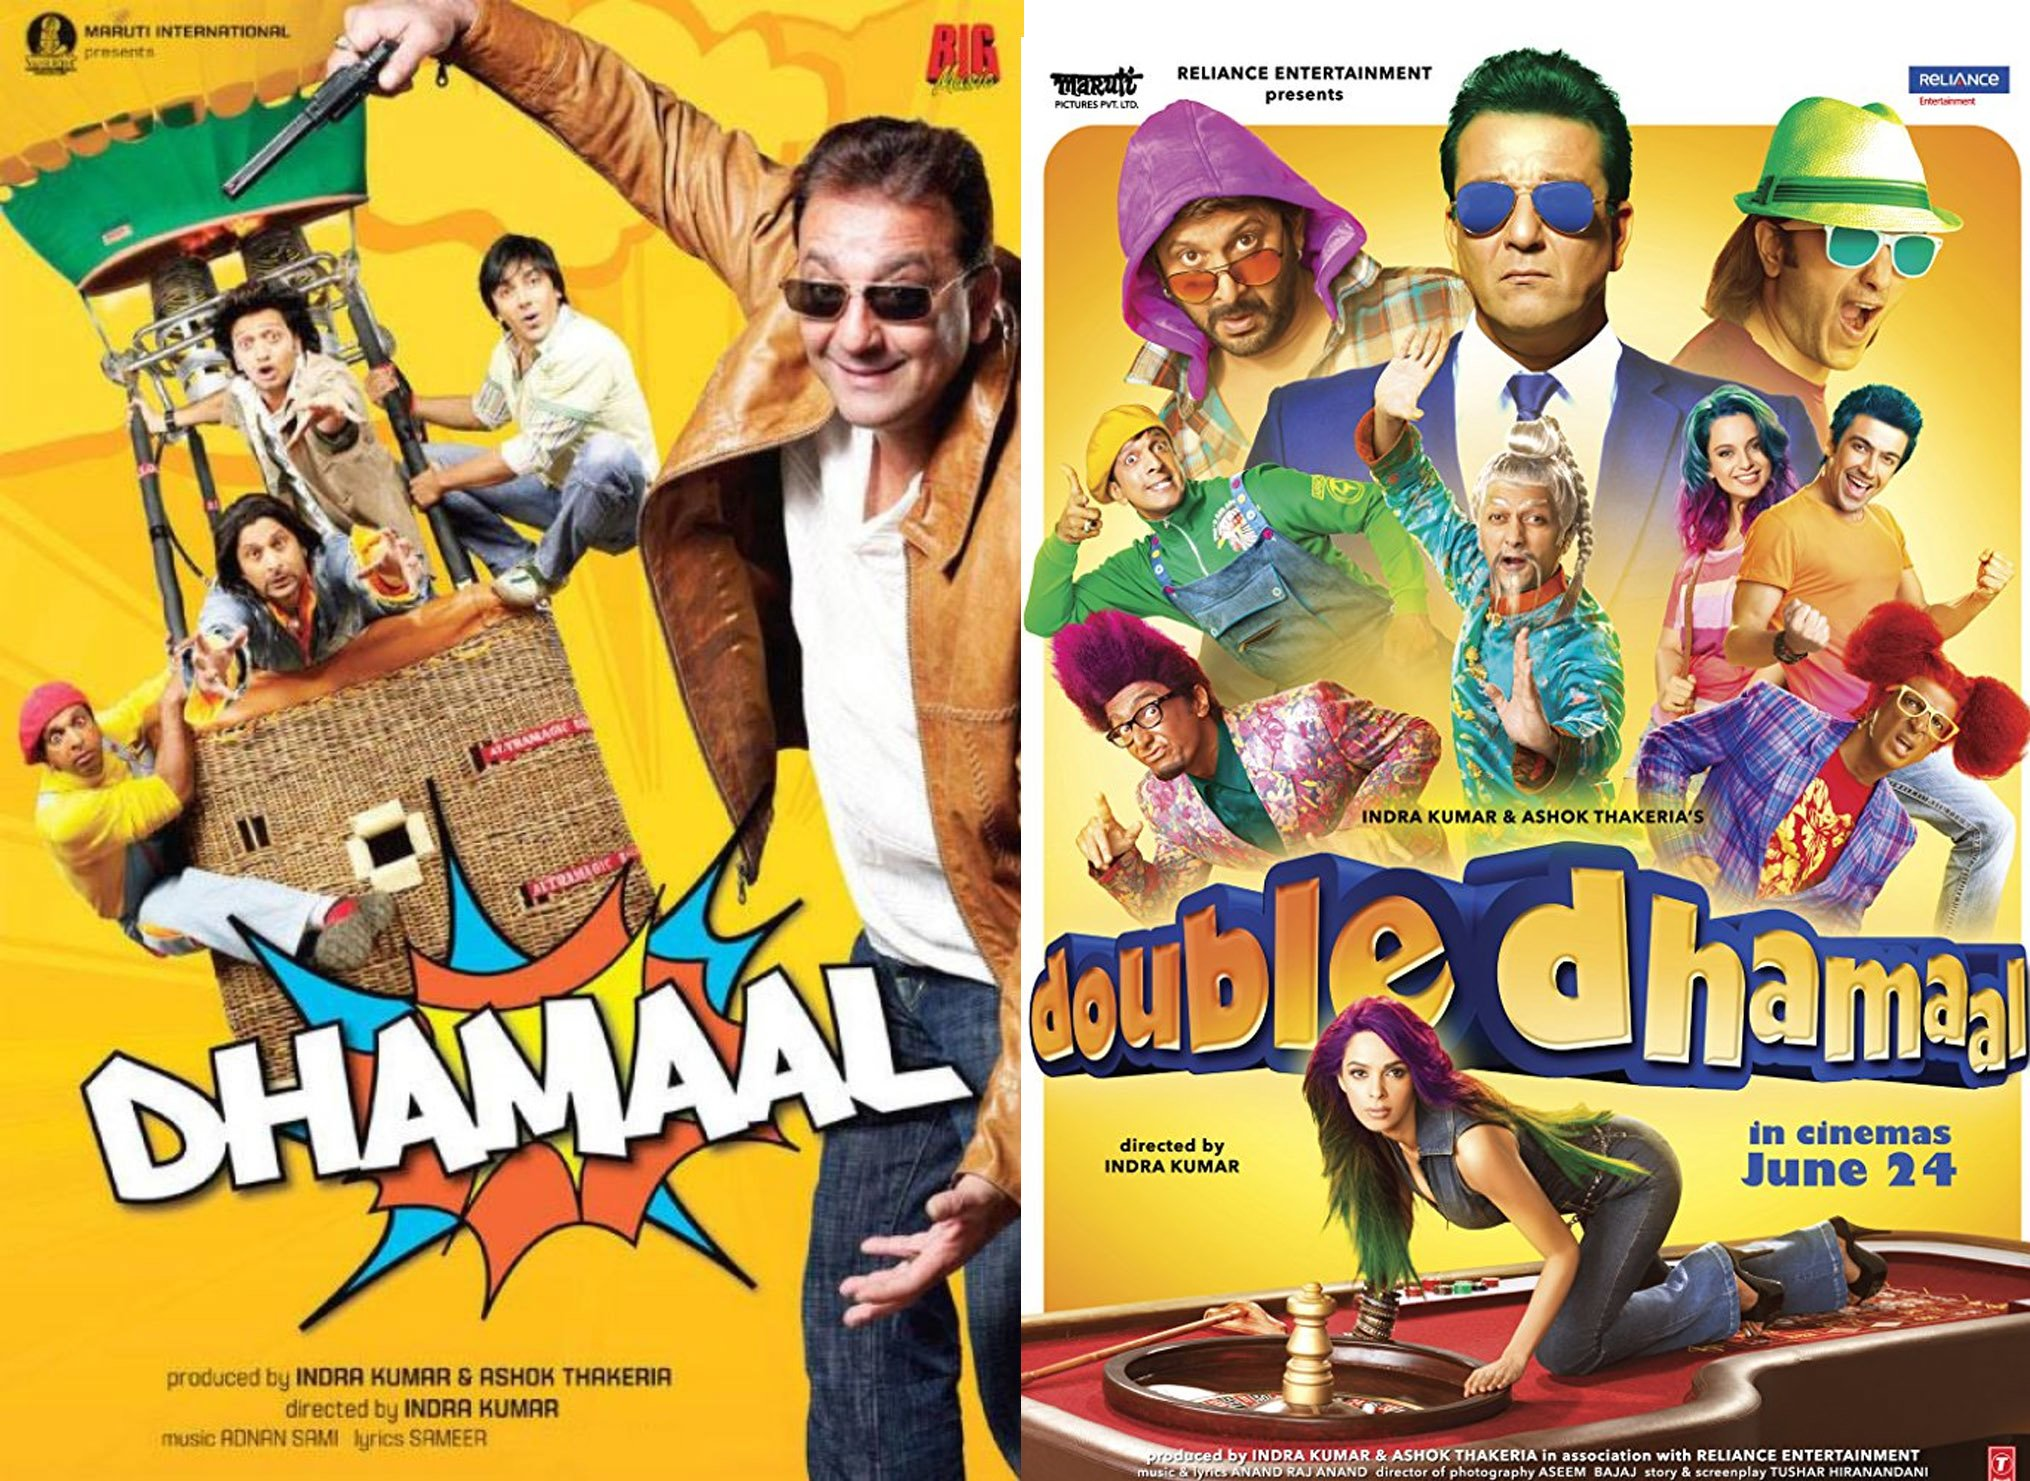 dhamaal and double dhamaal poster